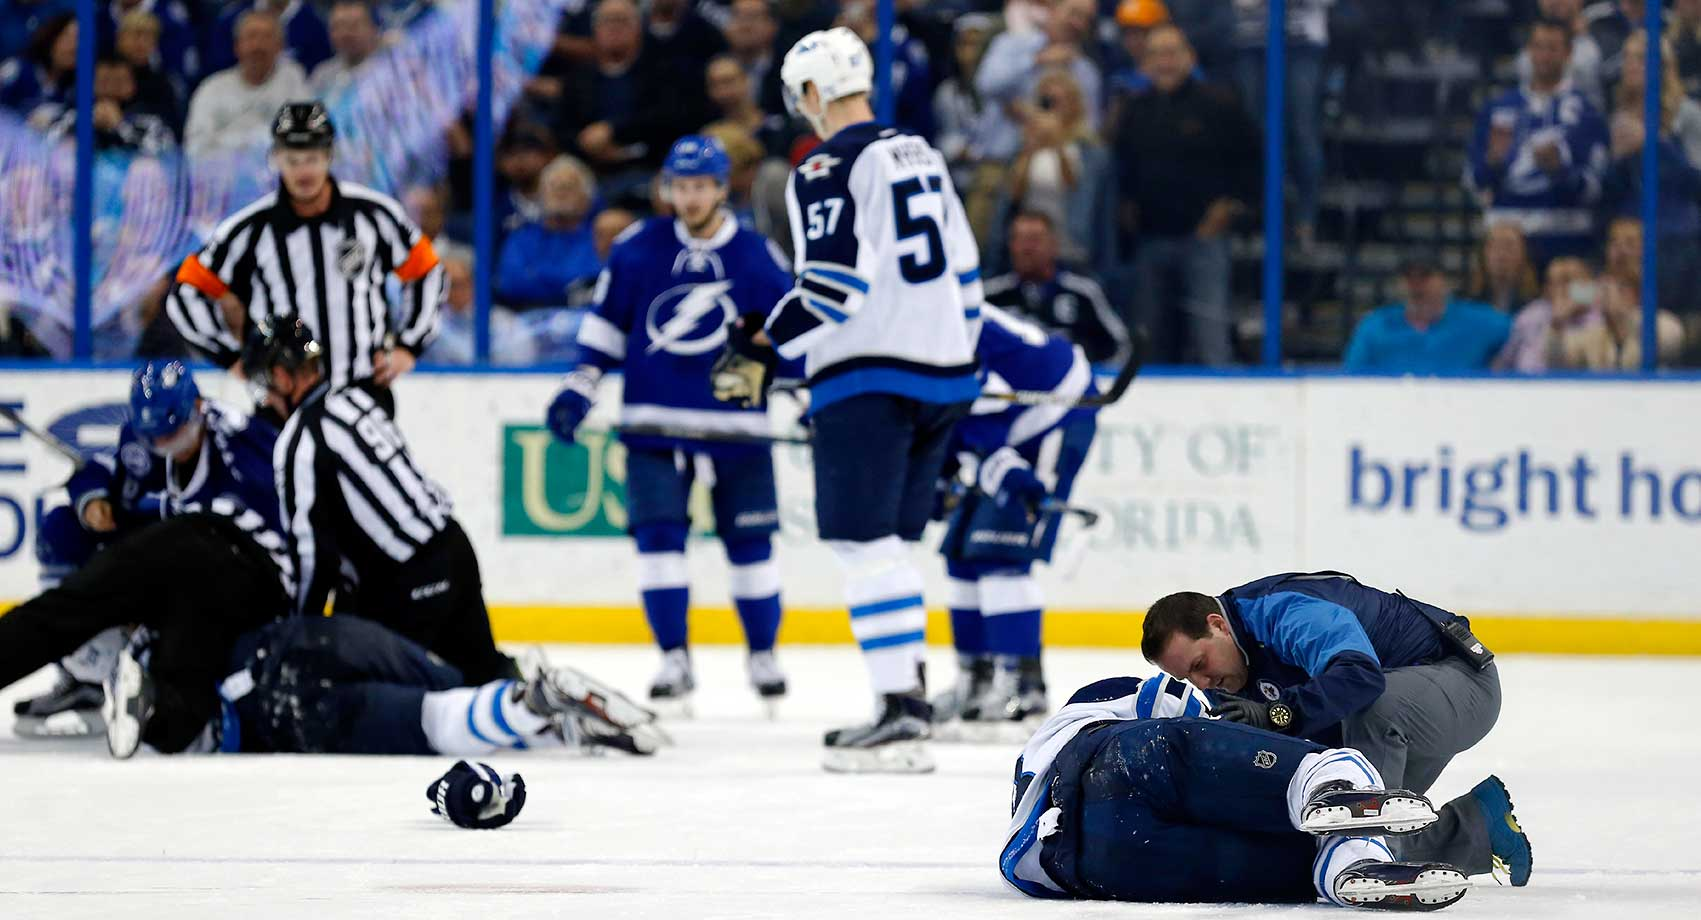 Winnipeg's Bryan Little is attended to after a hit from Tampa Bay's Anton Stralman.